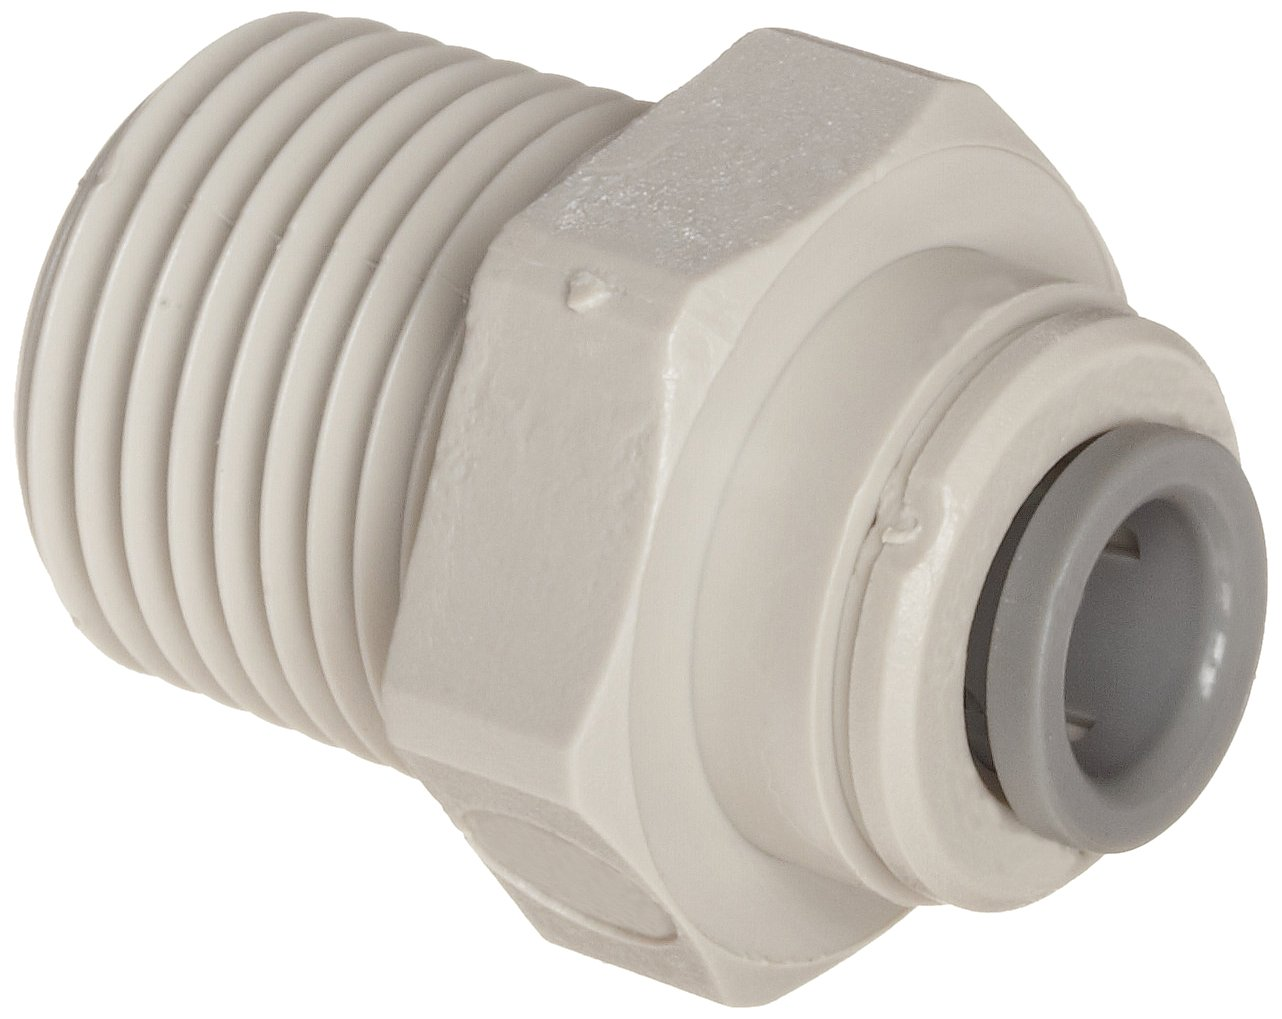 John Guest Acetal Copolymer Tube Fitting, Straight Adaptor, 1/4'' Tube OD x 1/4'' NPTF Male (Pack of 10) by John Guest